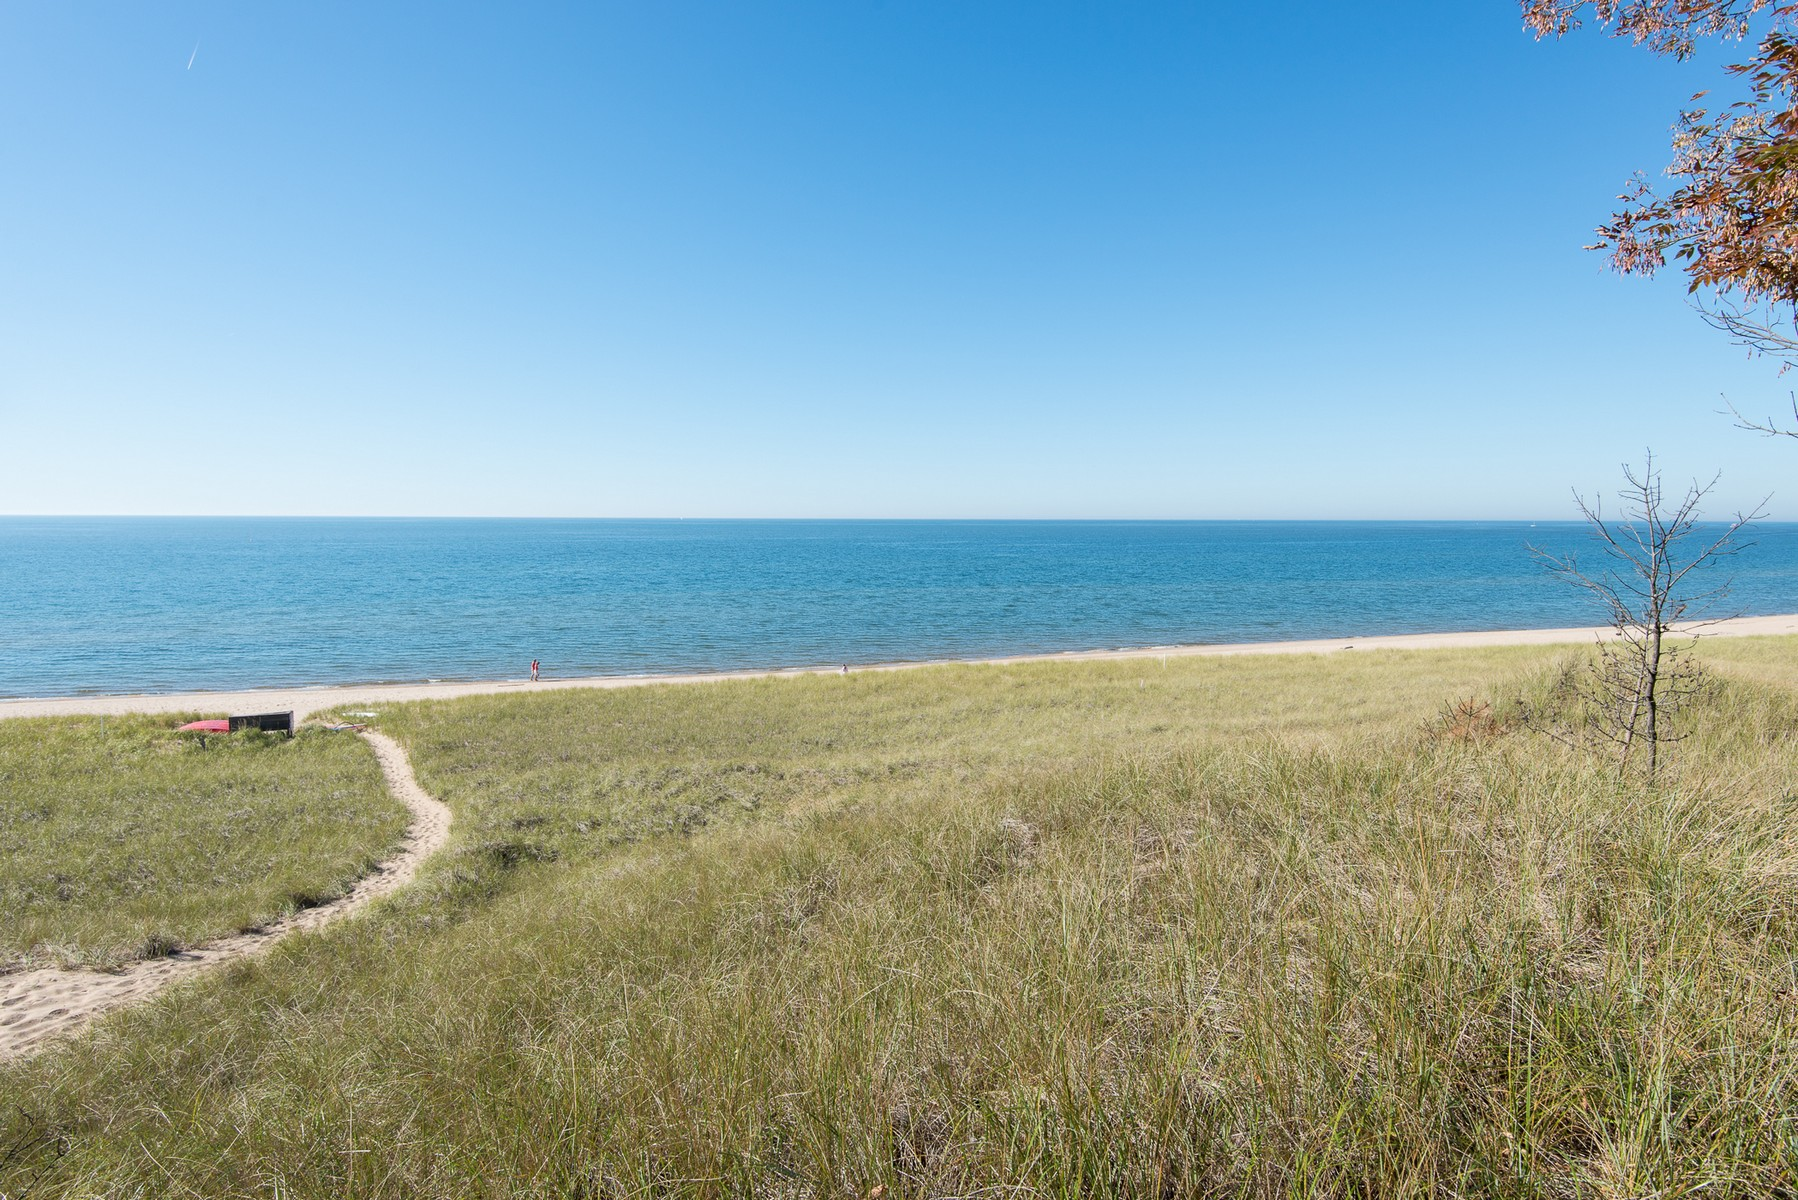 Land for Sale at Dunegrass 650 Dunegrass Circle Drive Lot 11 Saugatuck, Michigan, 49453 United States